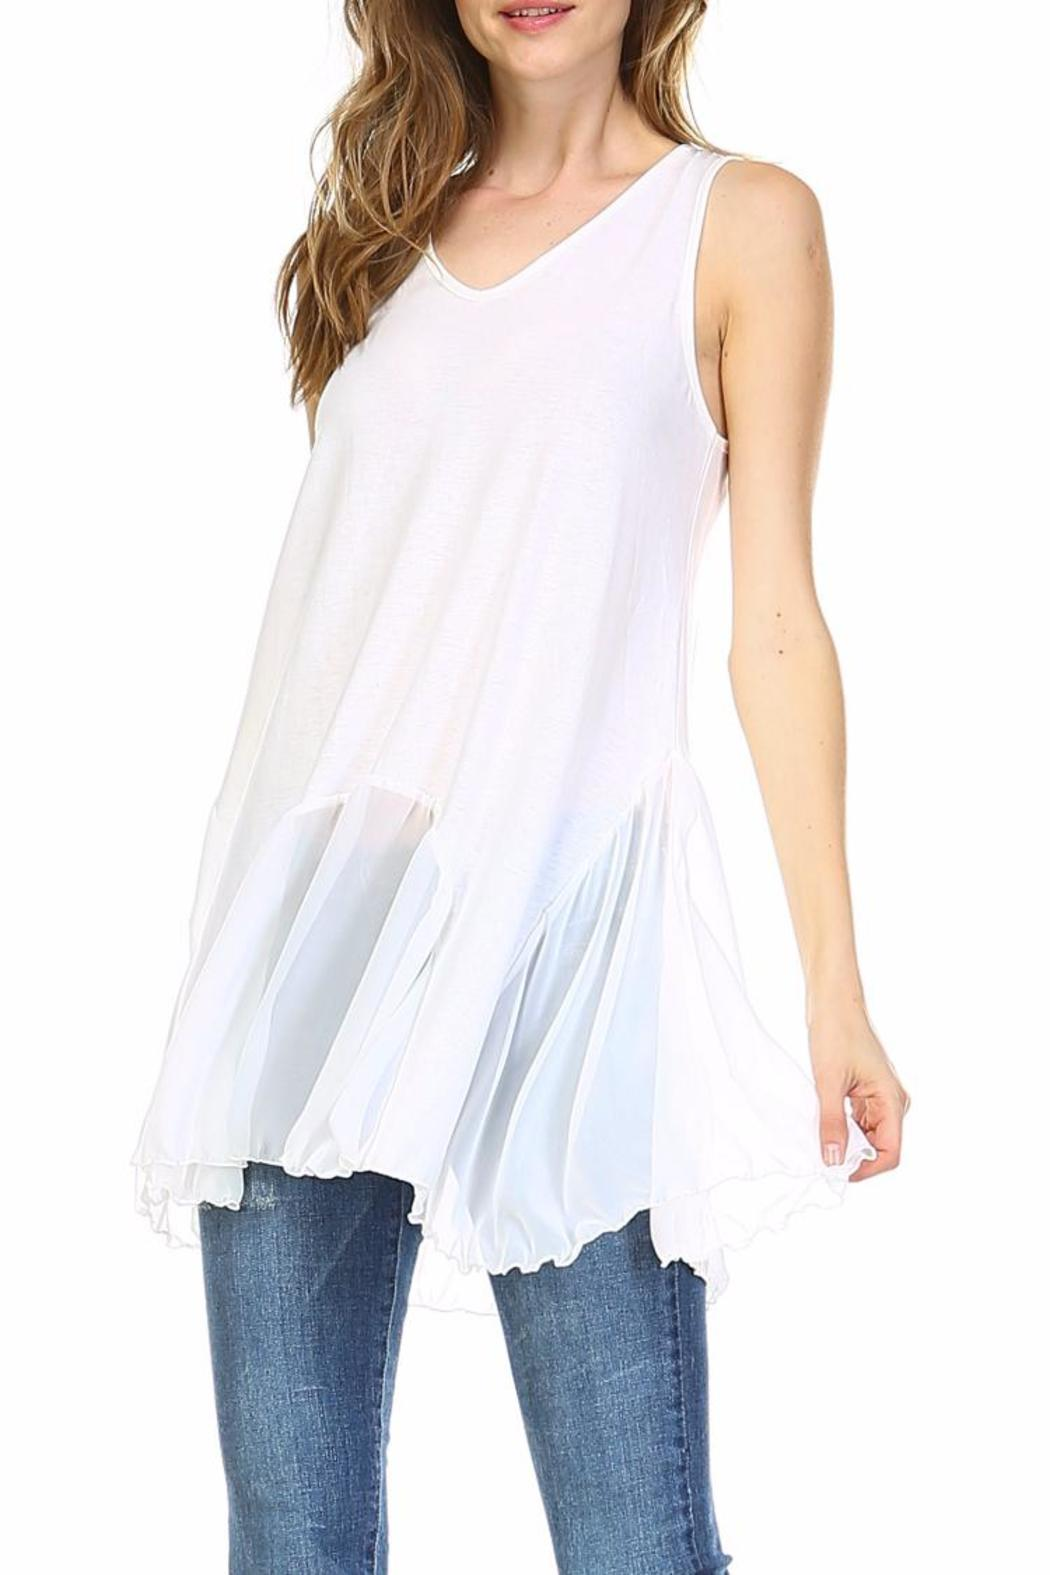 Melody Flowy Top Extender - Main Image